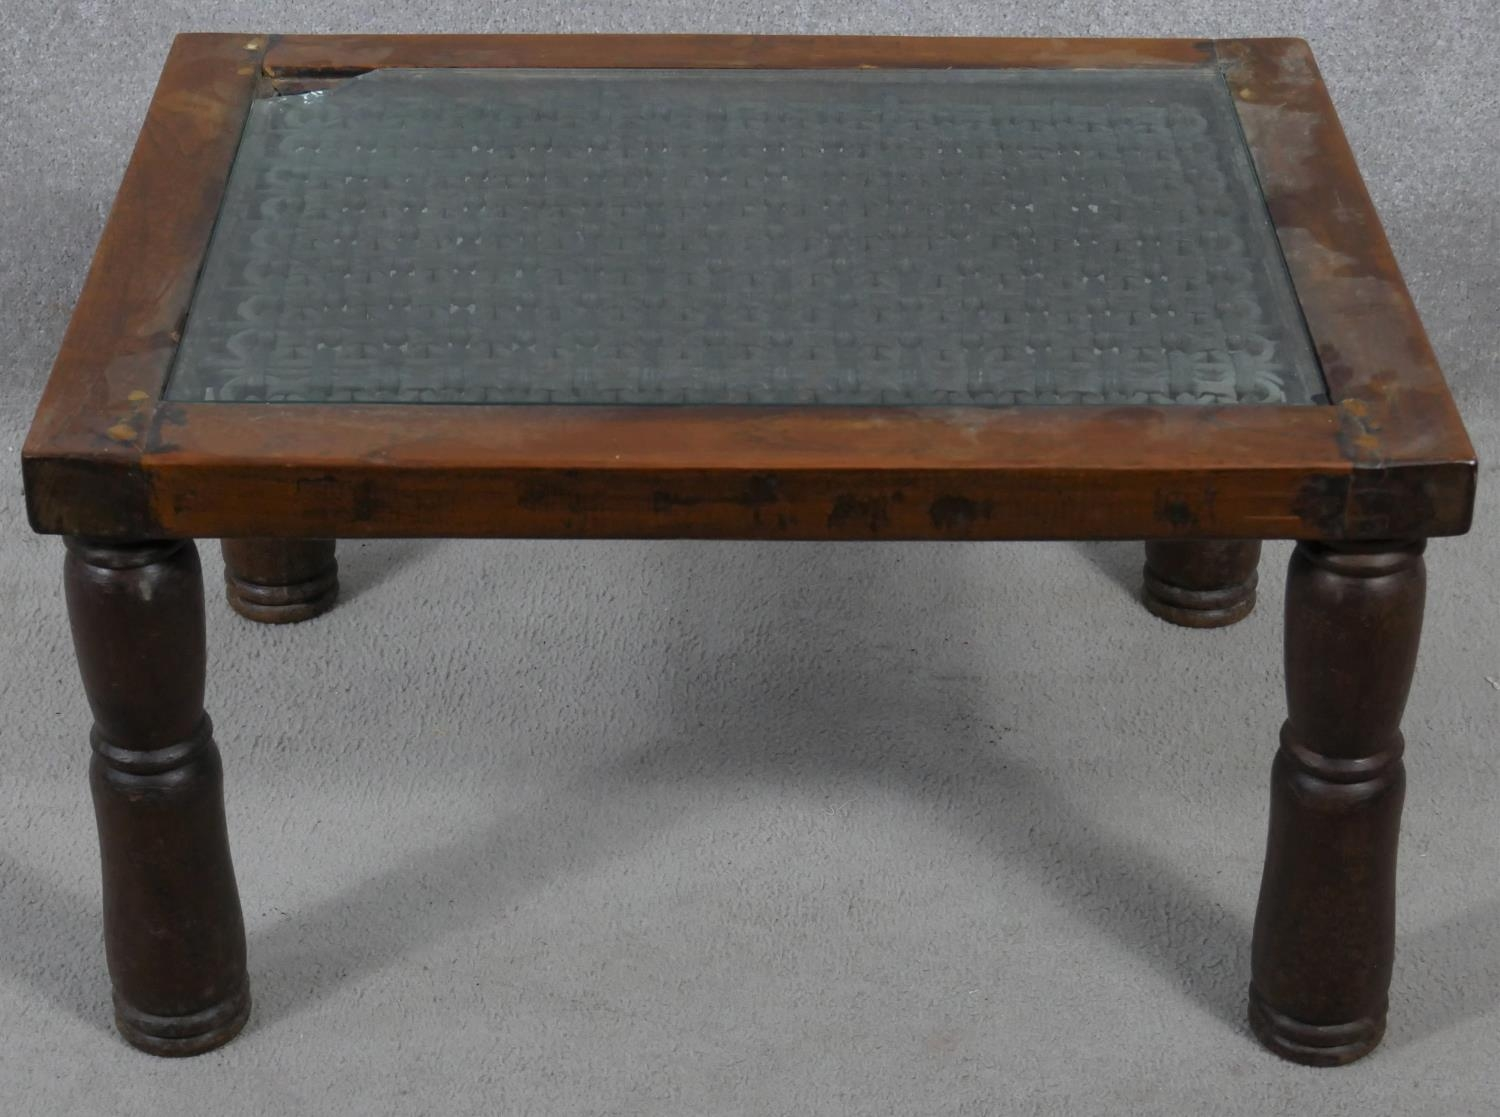 An Indian hardwood occasional table with plate glass on a metal lattice work inset top. H.38 L.68.